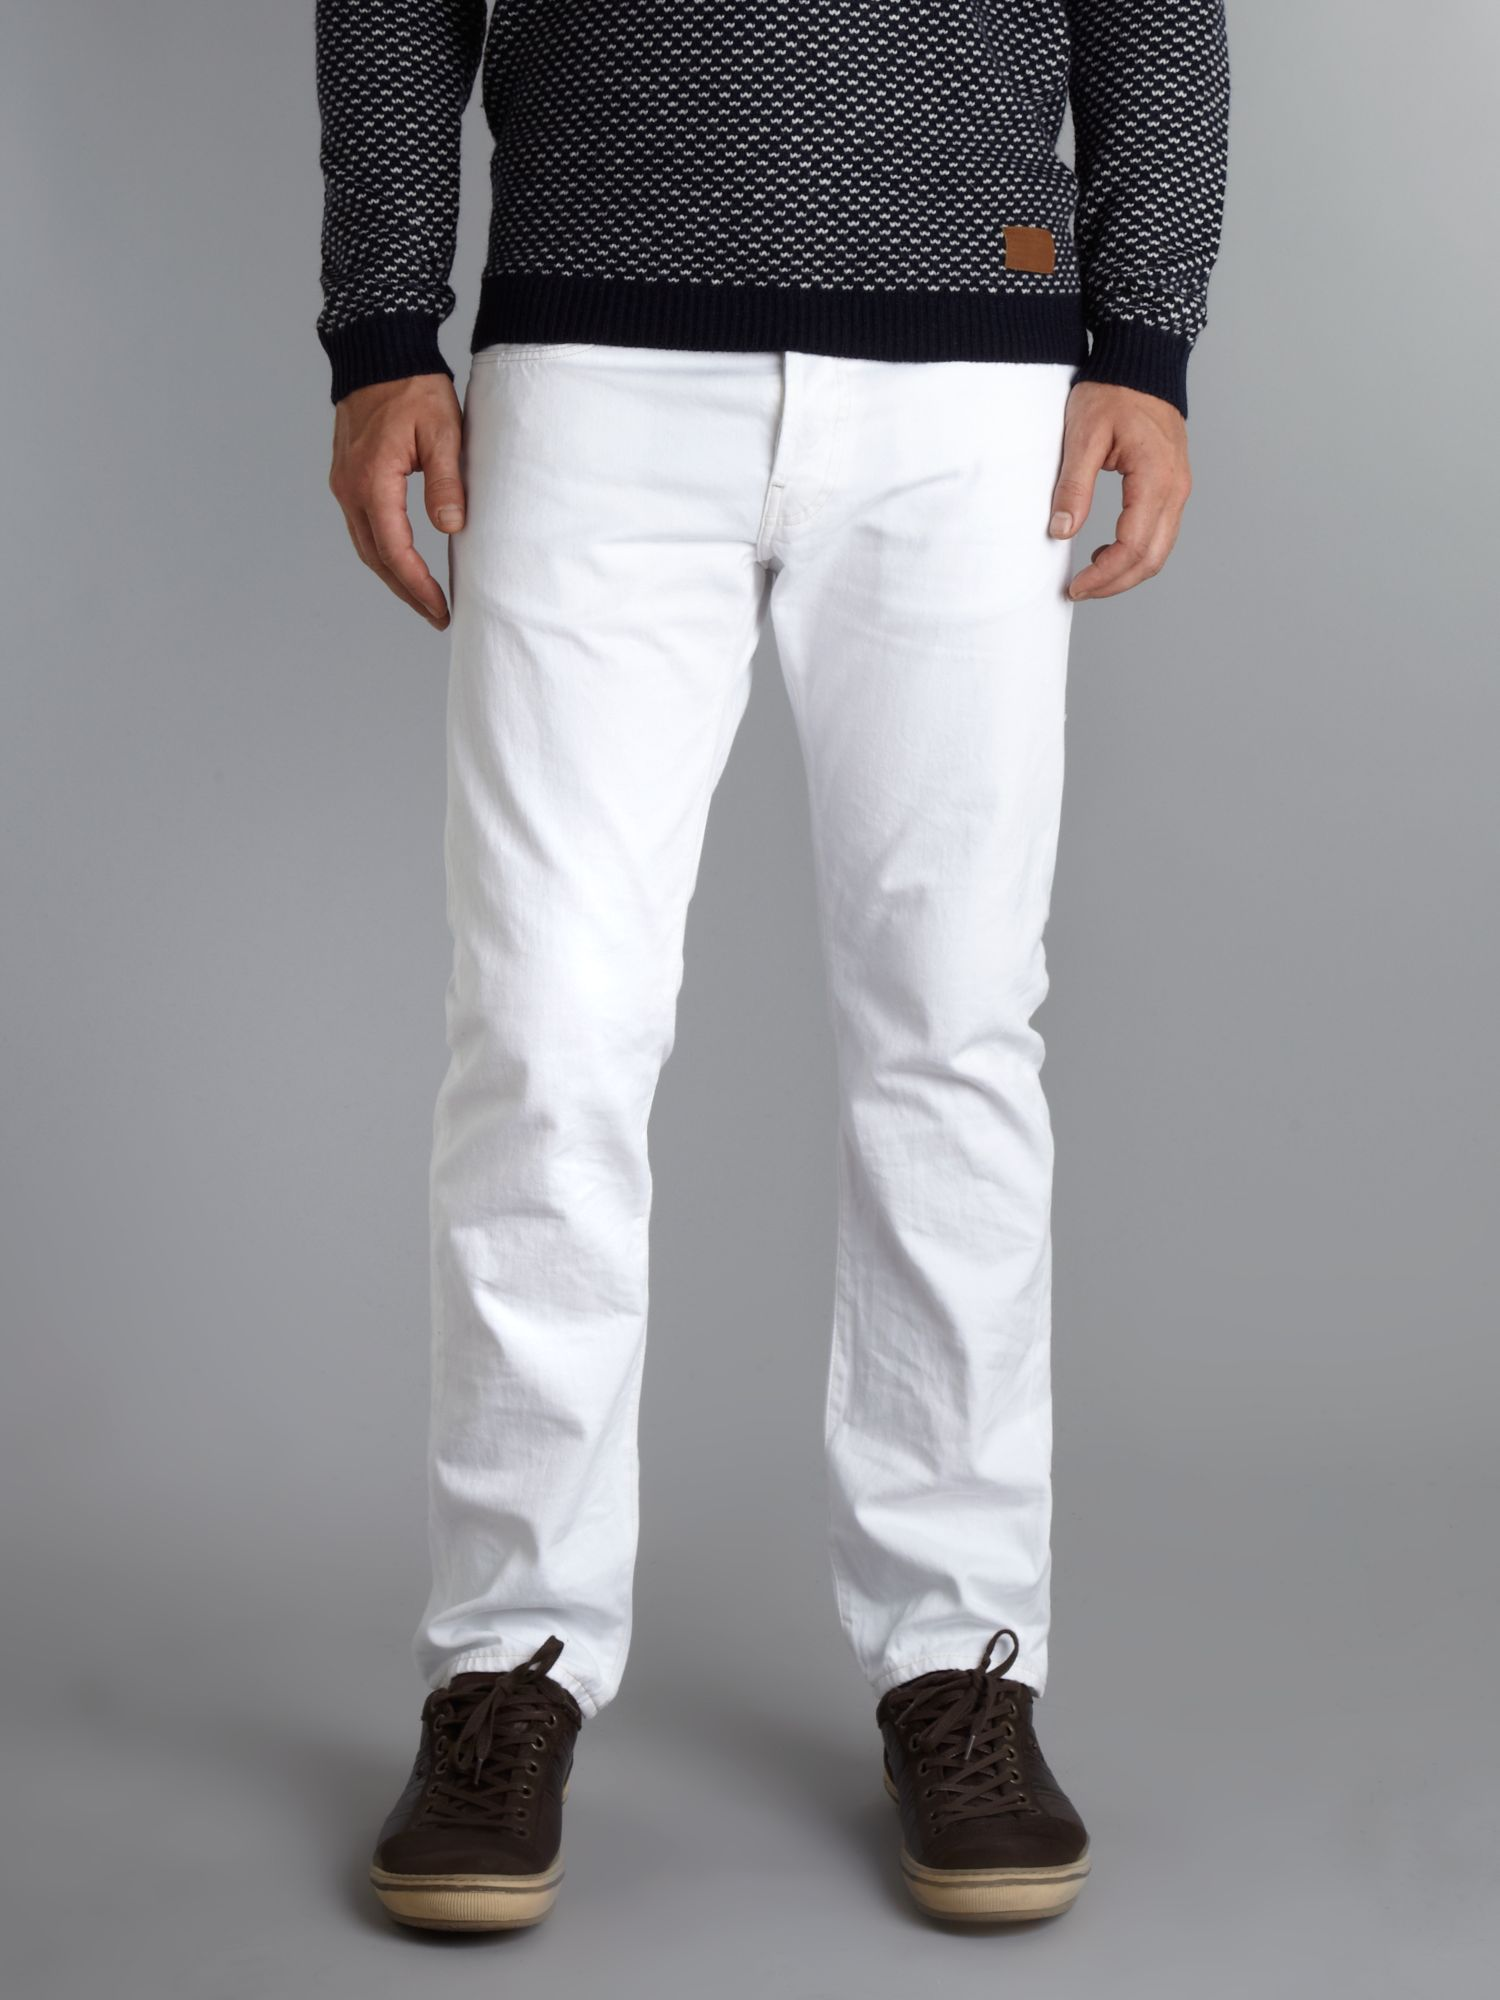 G-star raw Slim Spend Destroy Washed Jeans in White for ...